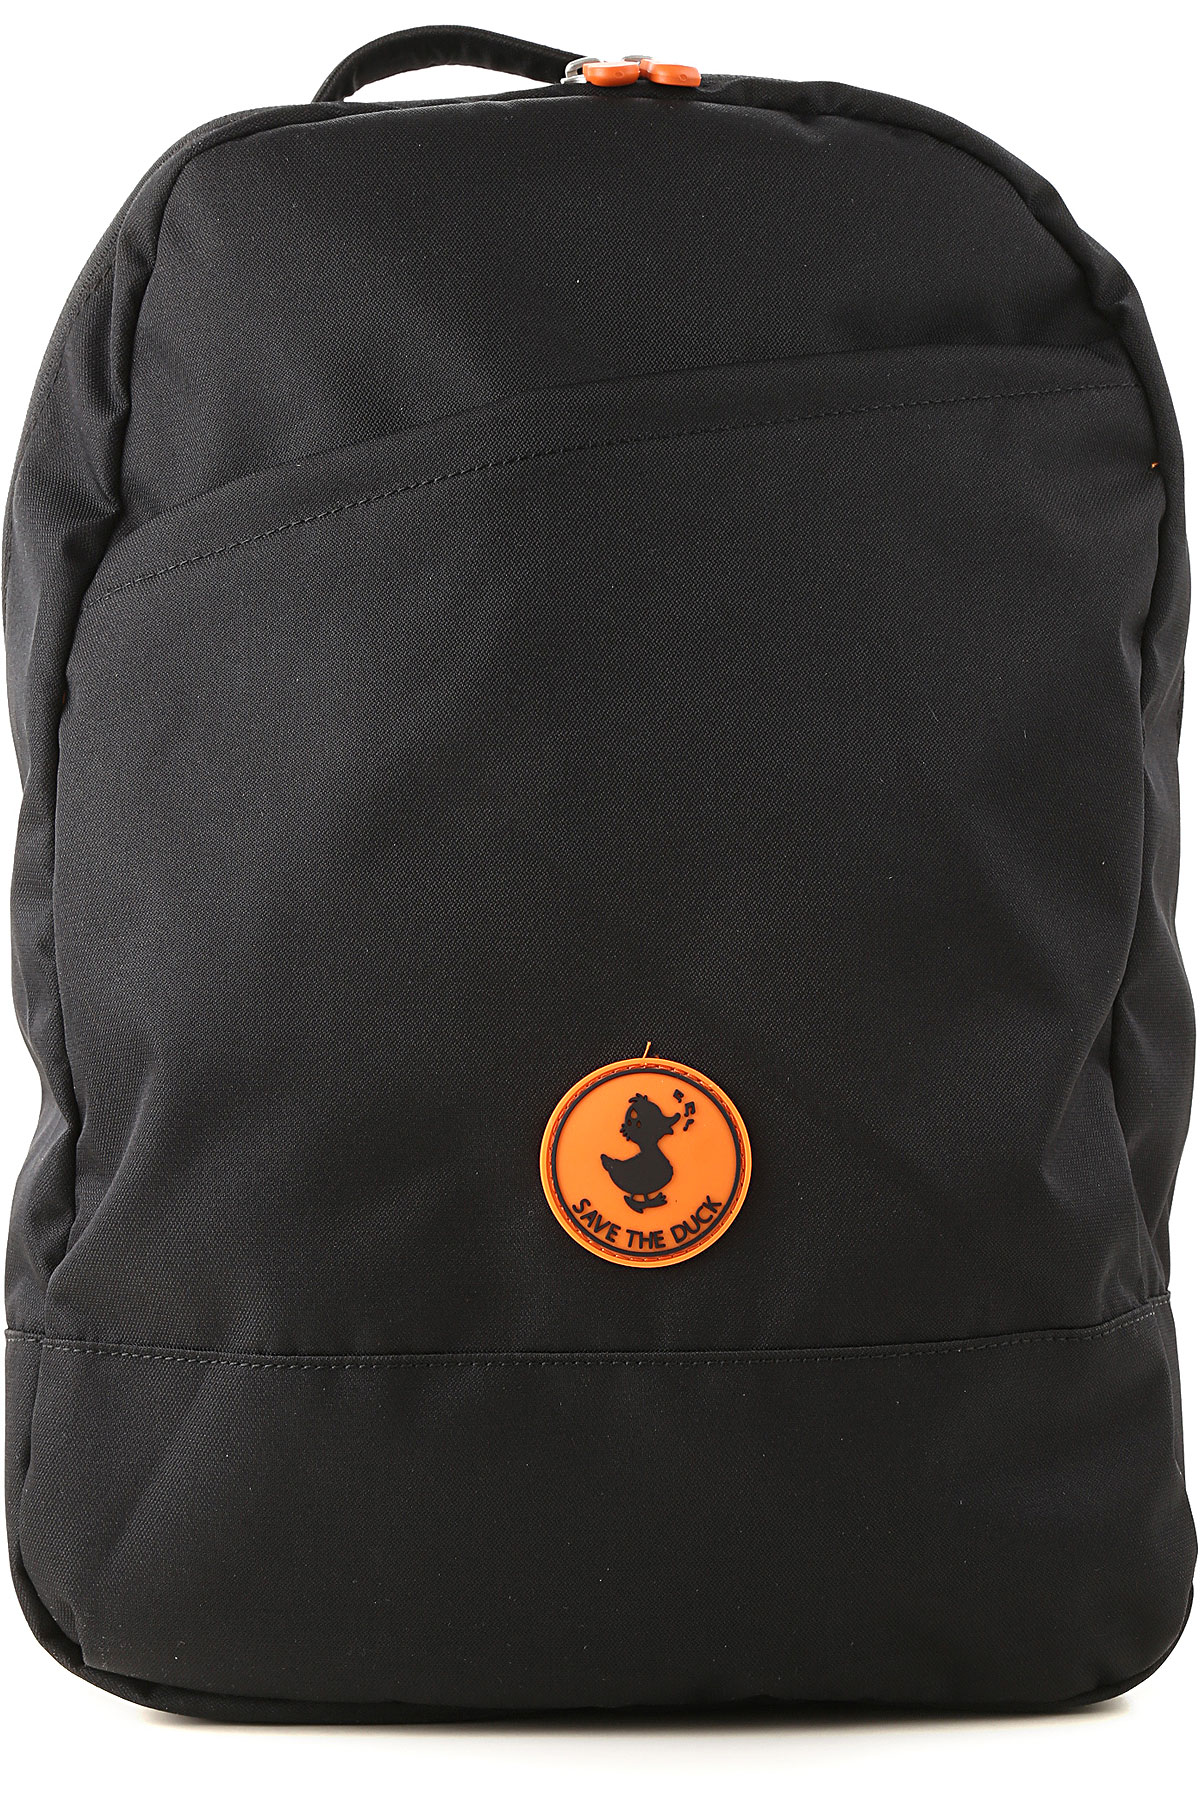 Save the Duck Backpack for Women On Sale, Black, Nylon, 2017